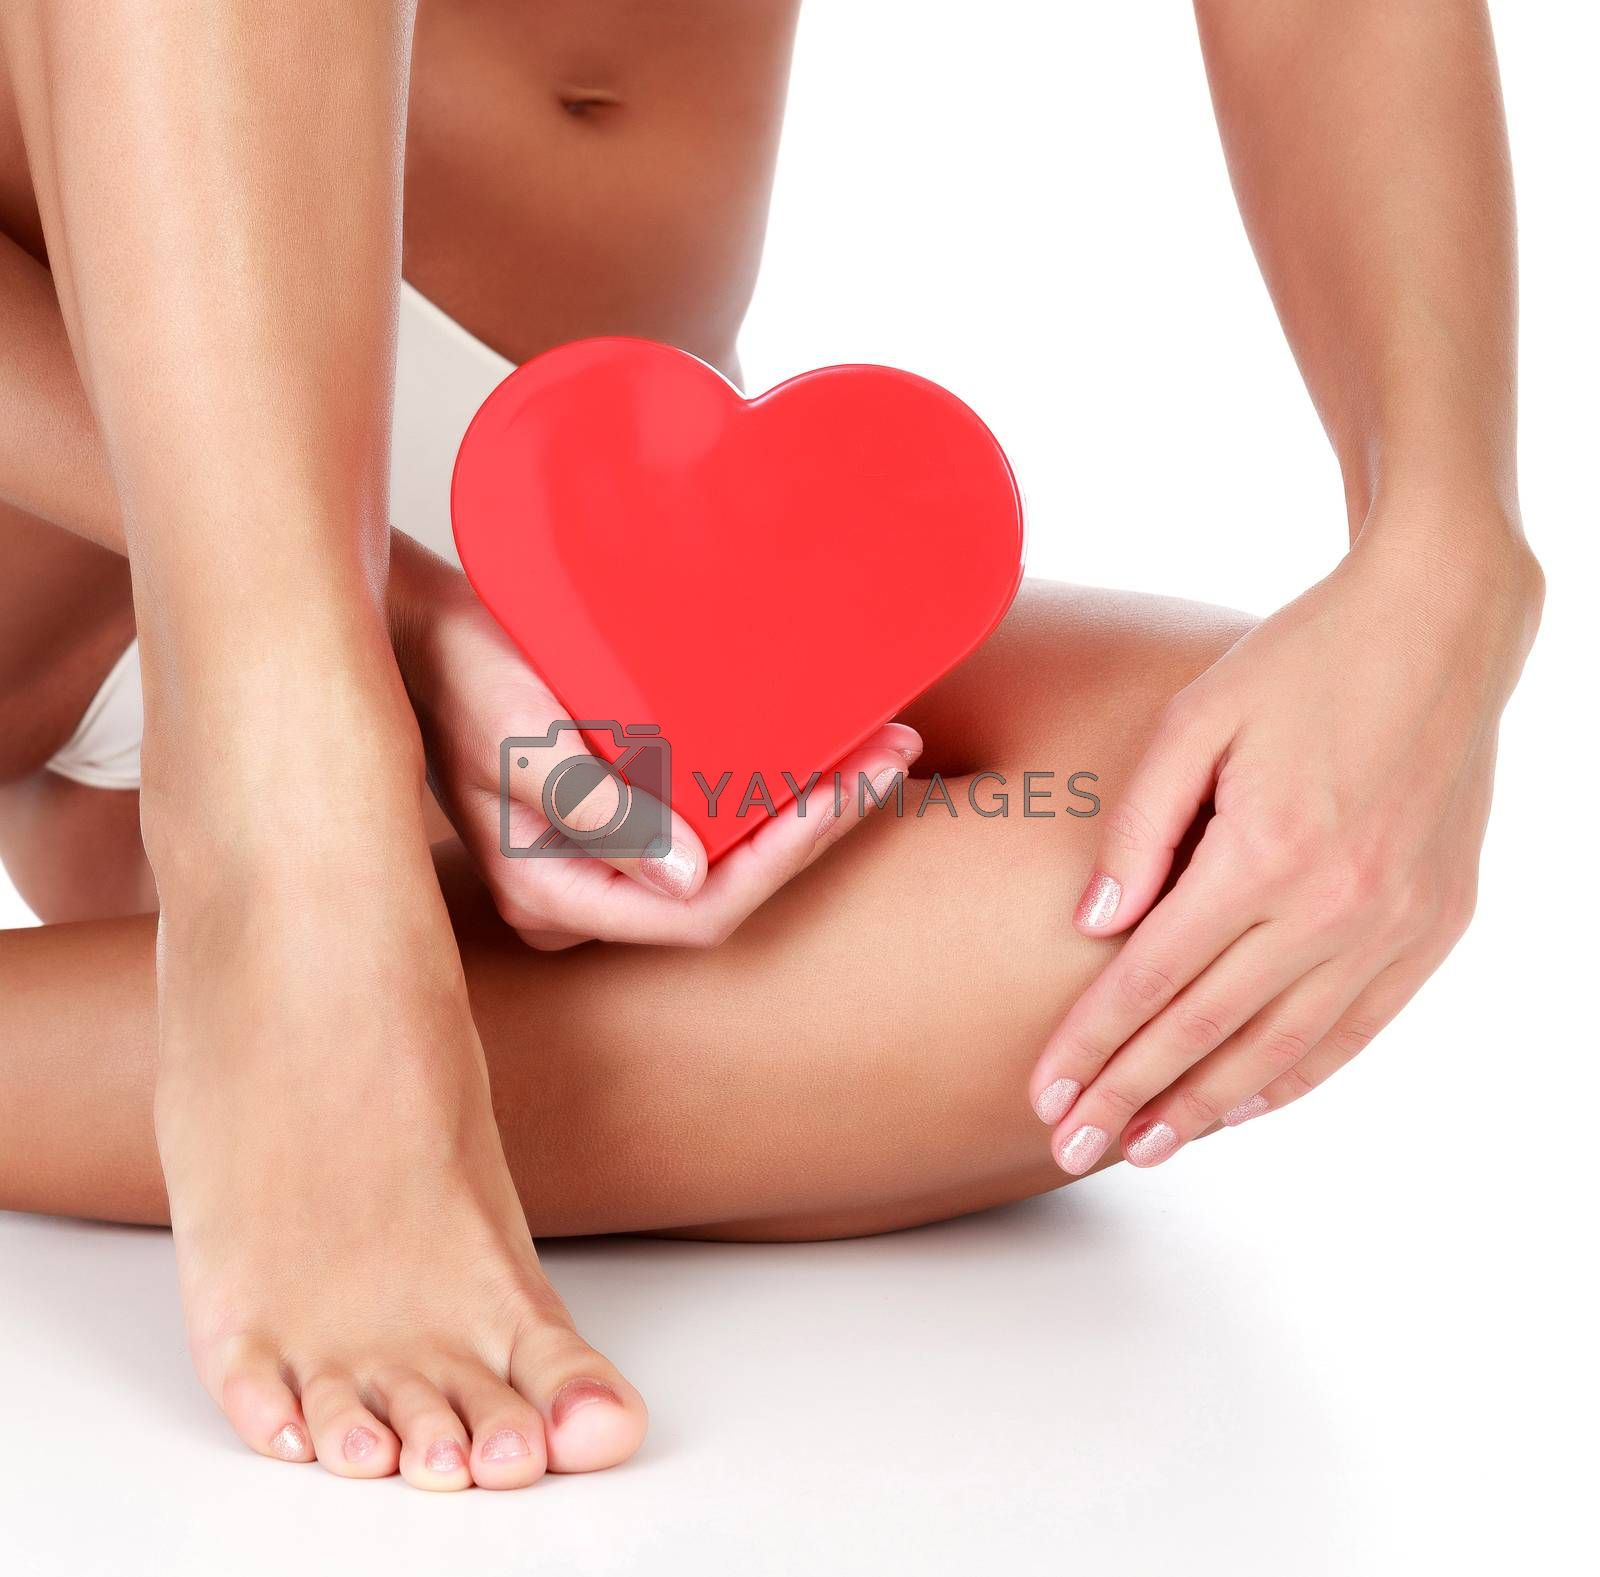 Woman with clean and soft skin holds a red plastic heart.